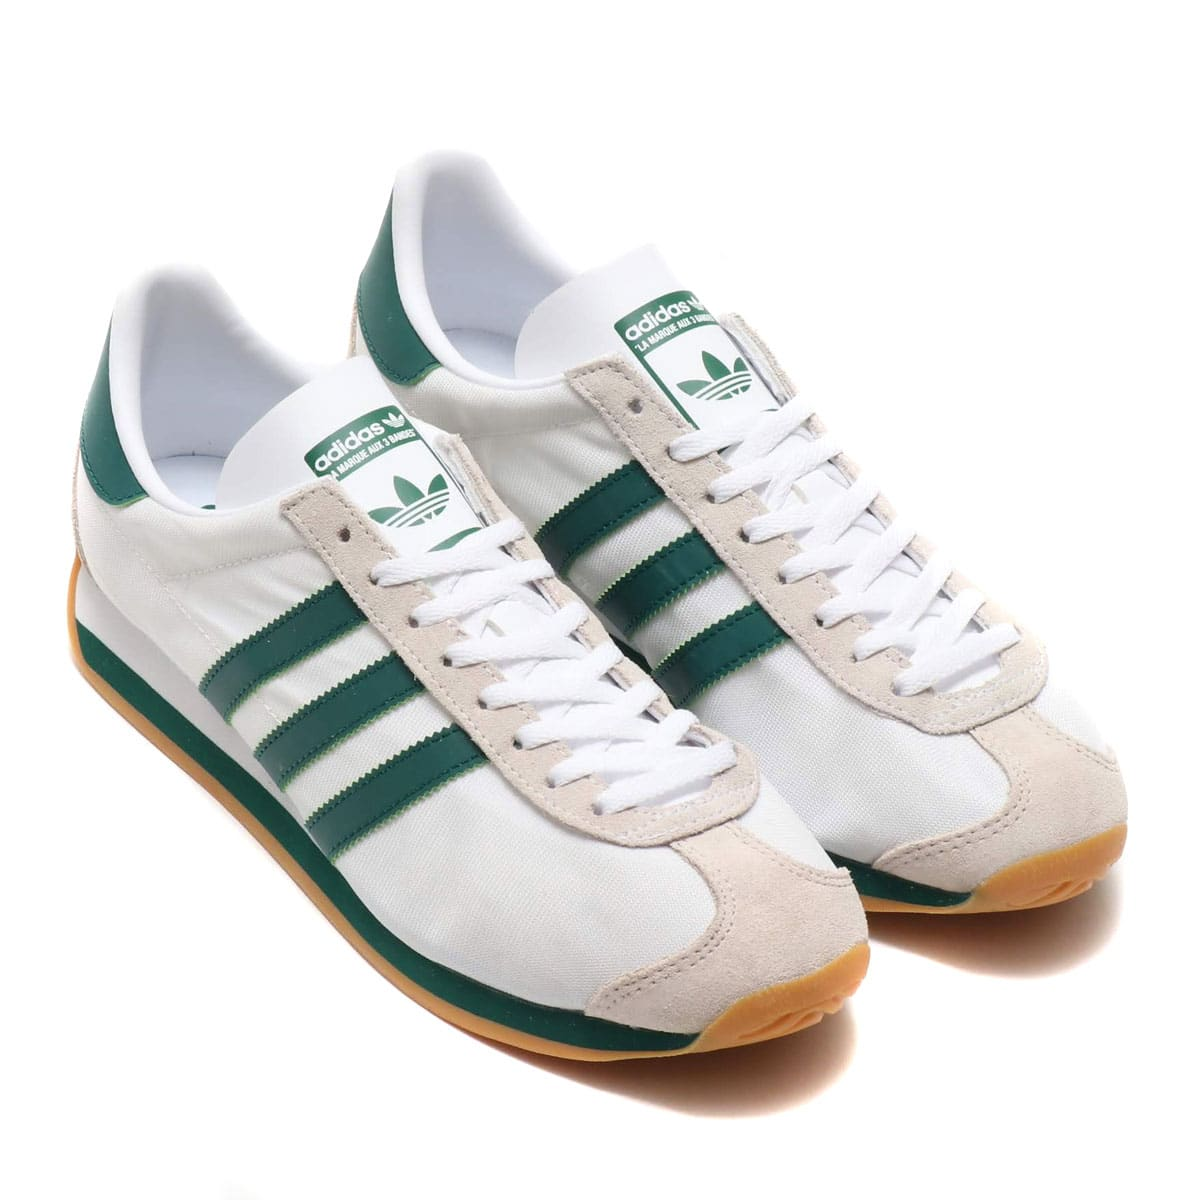 adidas Originals COUNTRY OG RUNNING WHITE/COLLEGEATE GREEN/CLEAR BROWN 19FW-I_photo_large